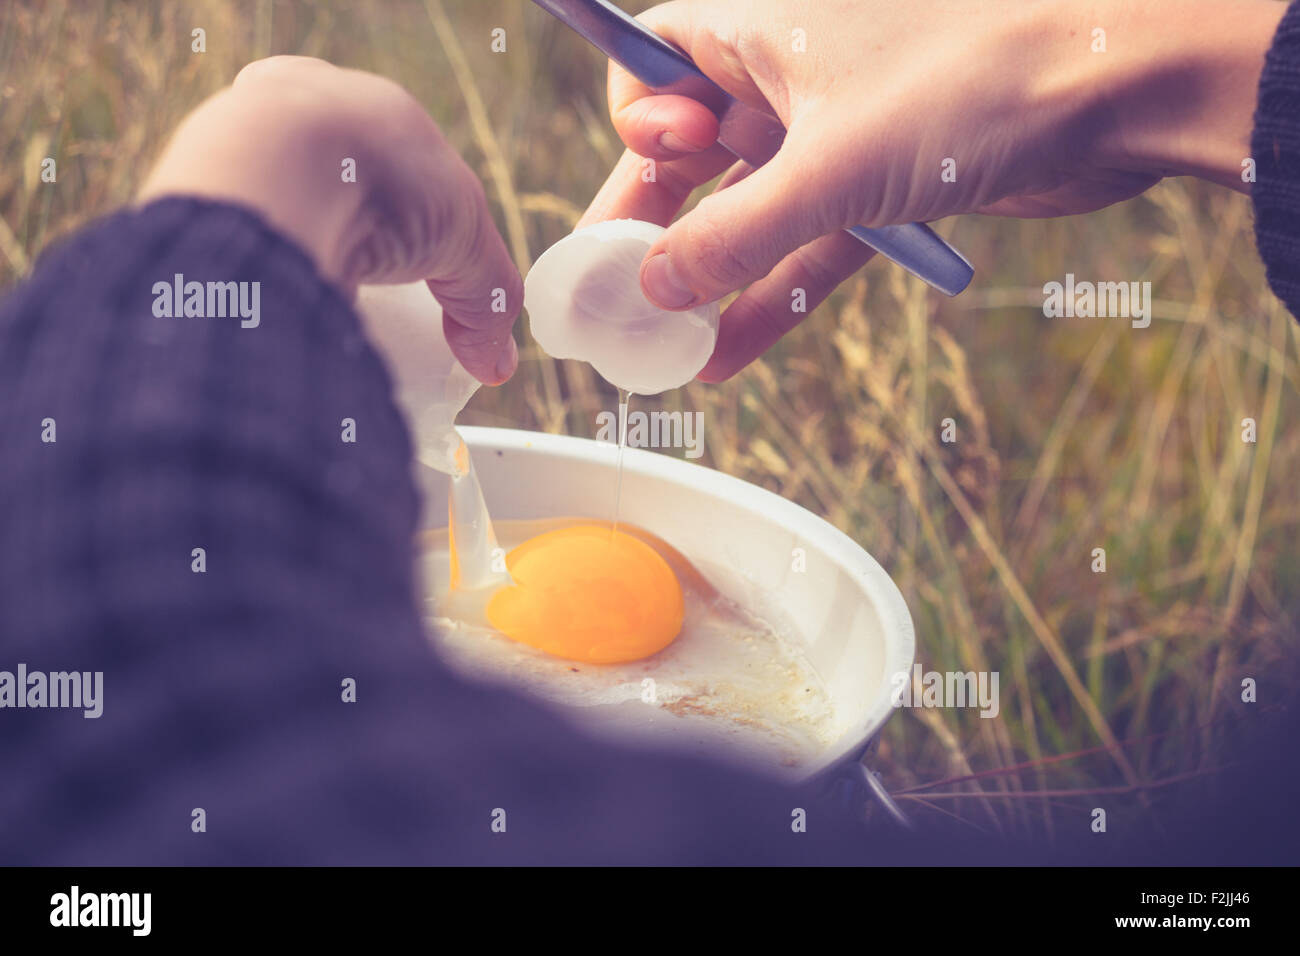 Hands of young woman cooking egg in nature Stock Photo